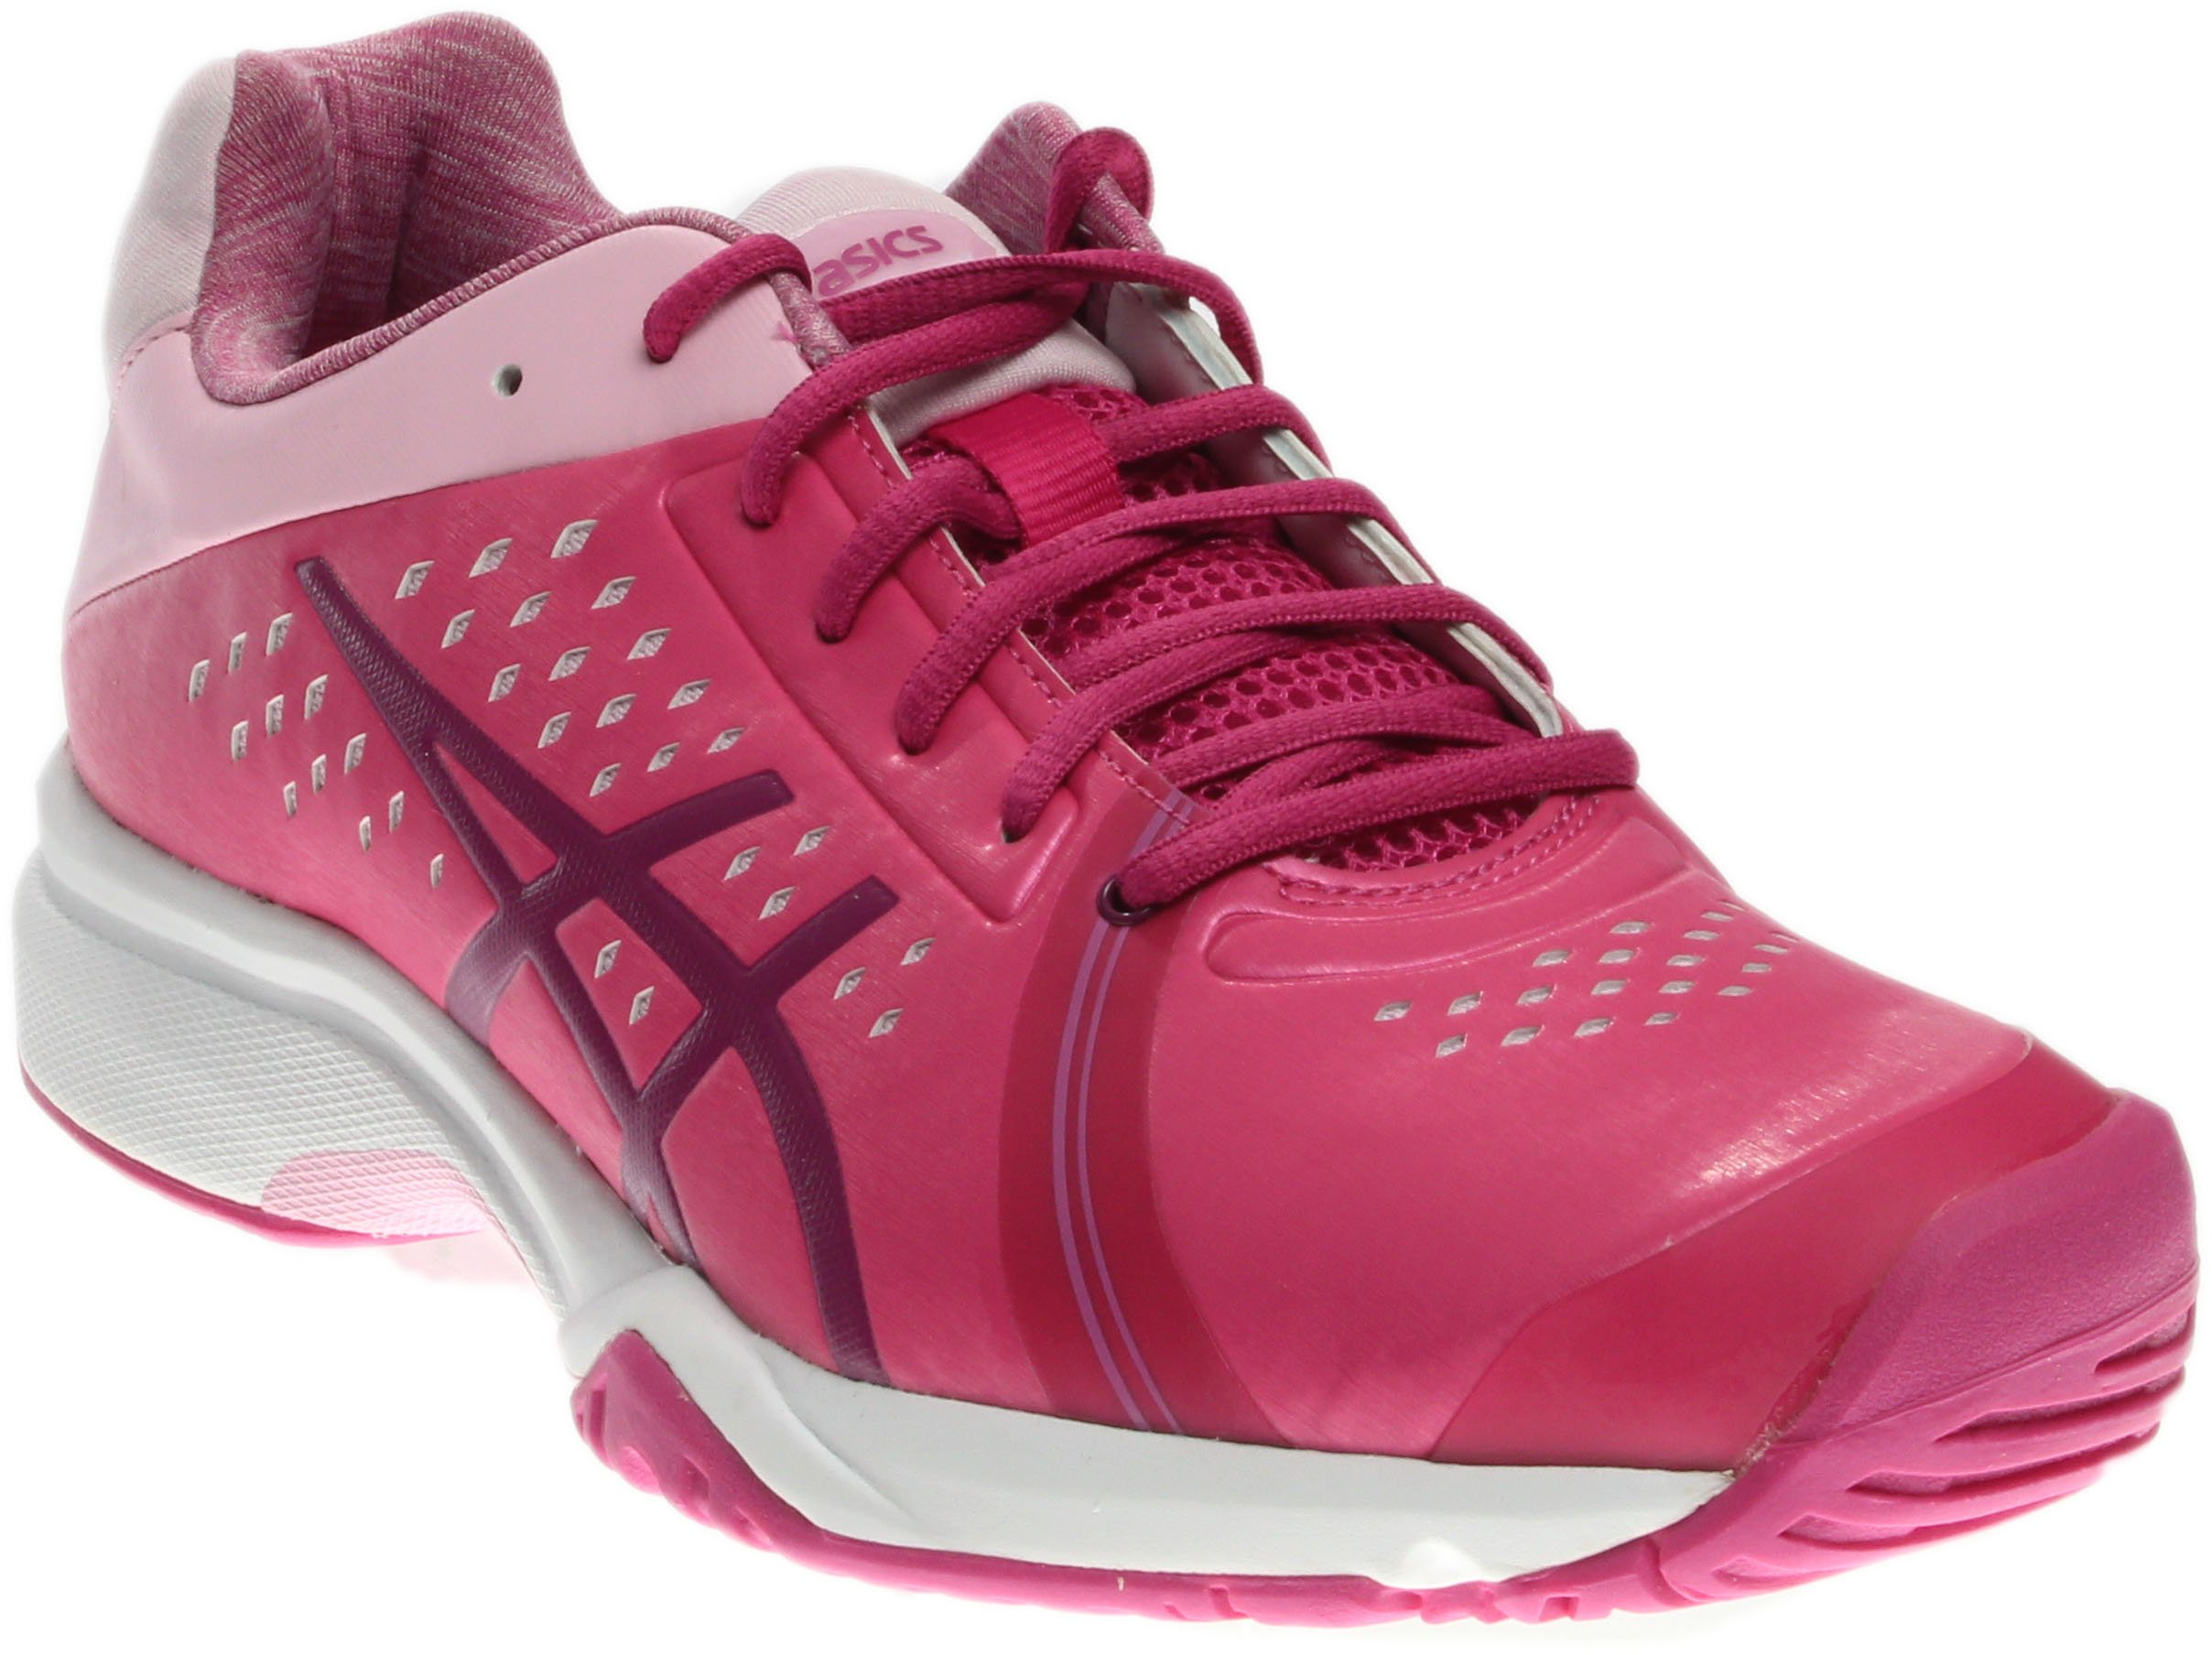 ASICS Women's GEL-Court Bella Tennis Shoe, Berry/Plum/Cotton Candy, 9.5 M US